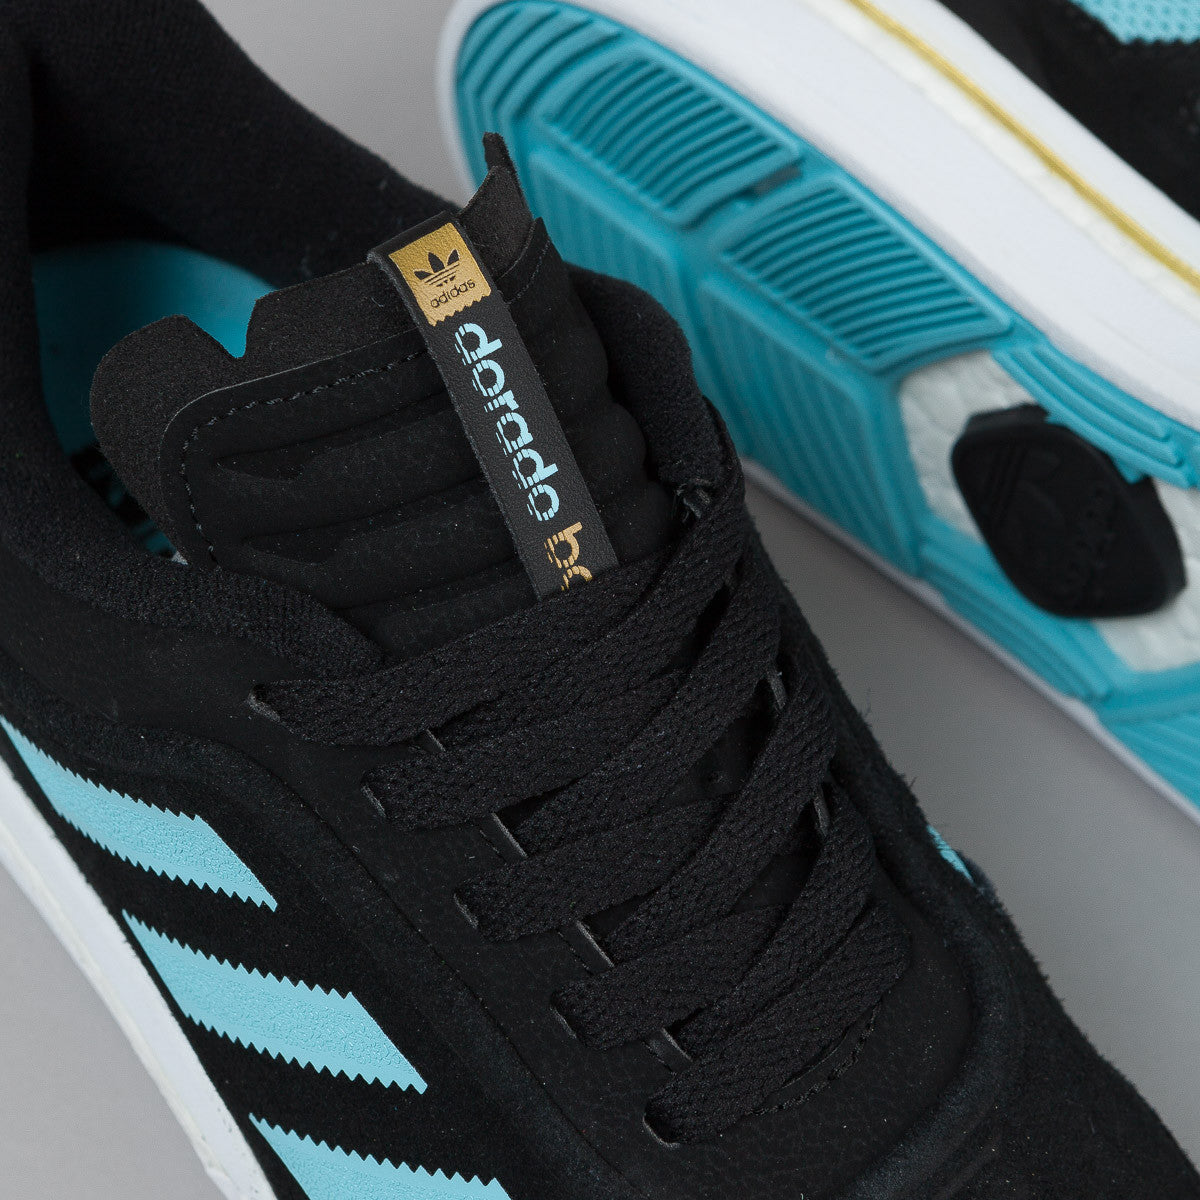 Adidas Dorado ADV Boost Shoes - Core Black / Light Aqua / Gold Metallic